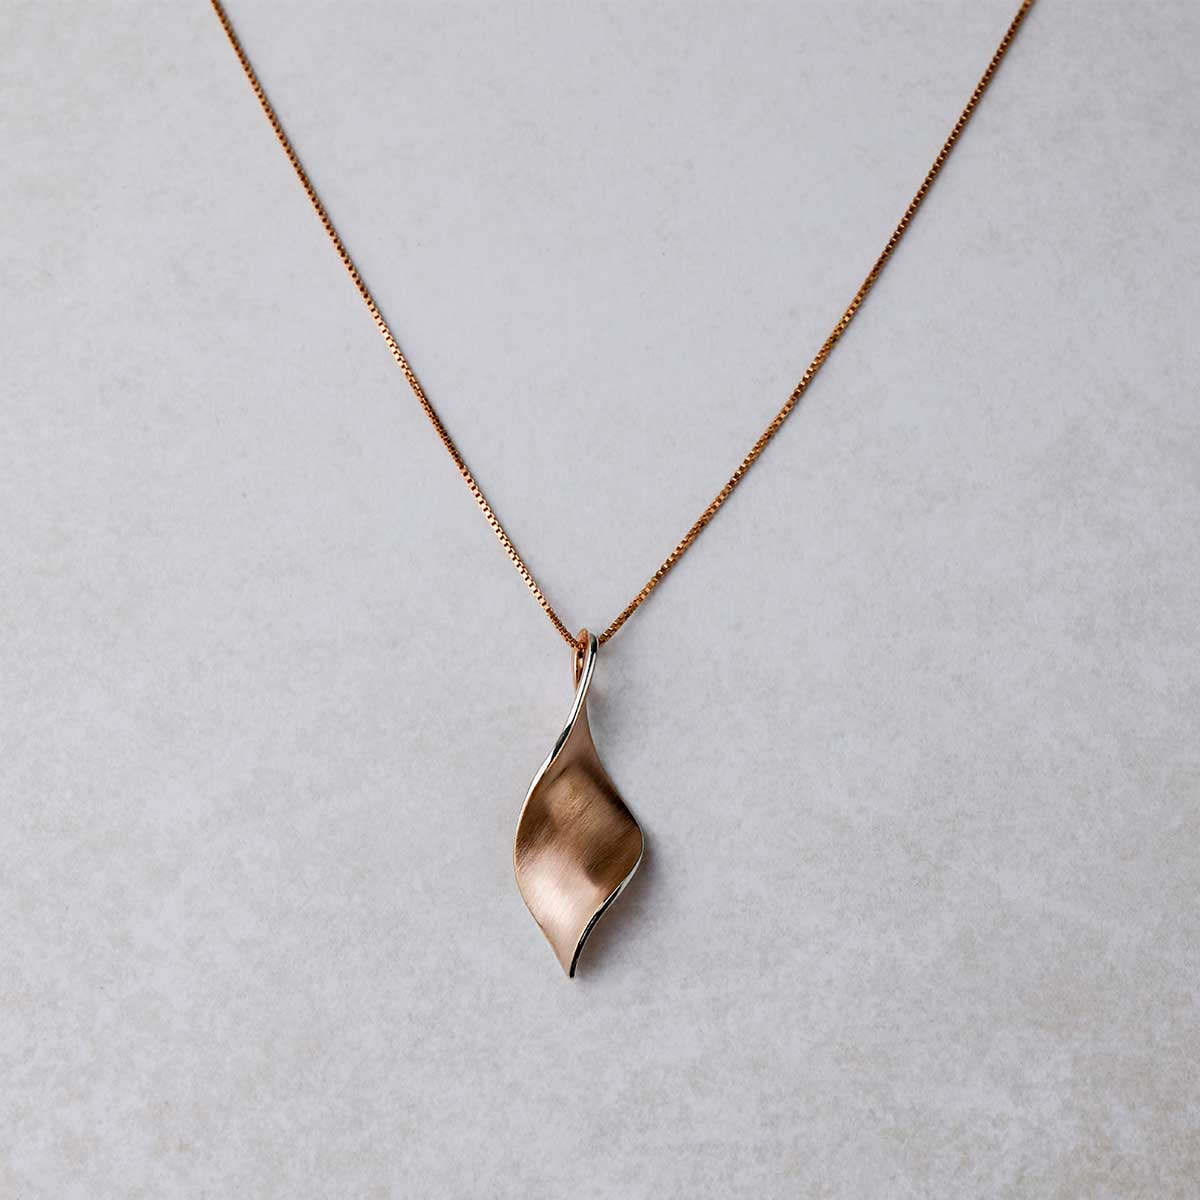 18ct Rose Gold Vermeil Twist Pendant